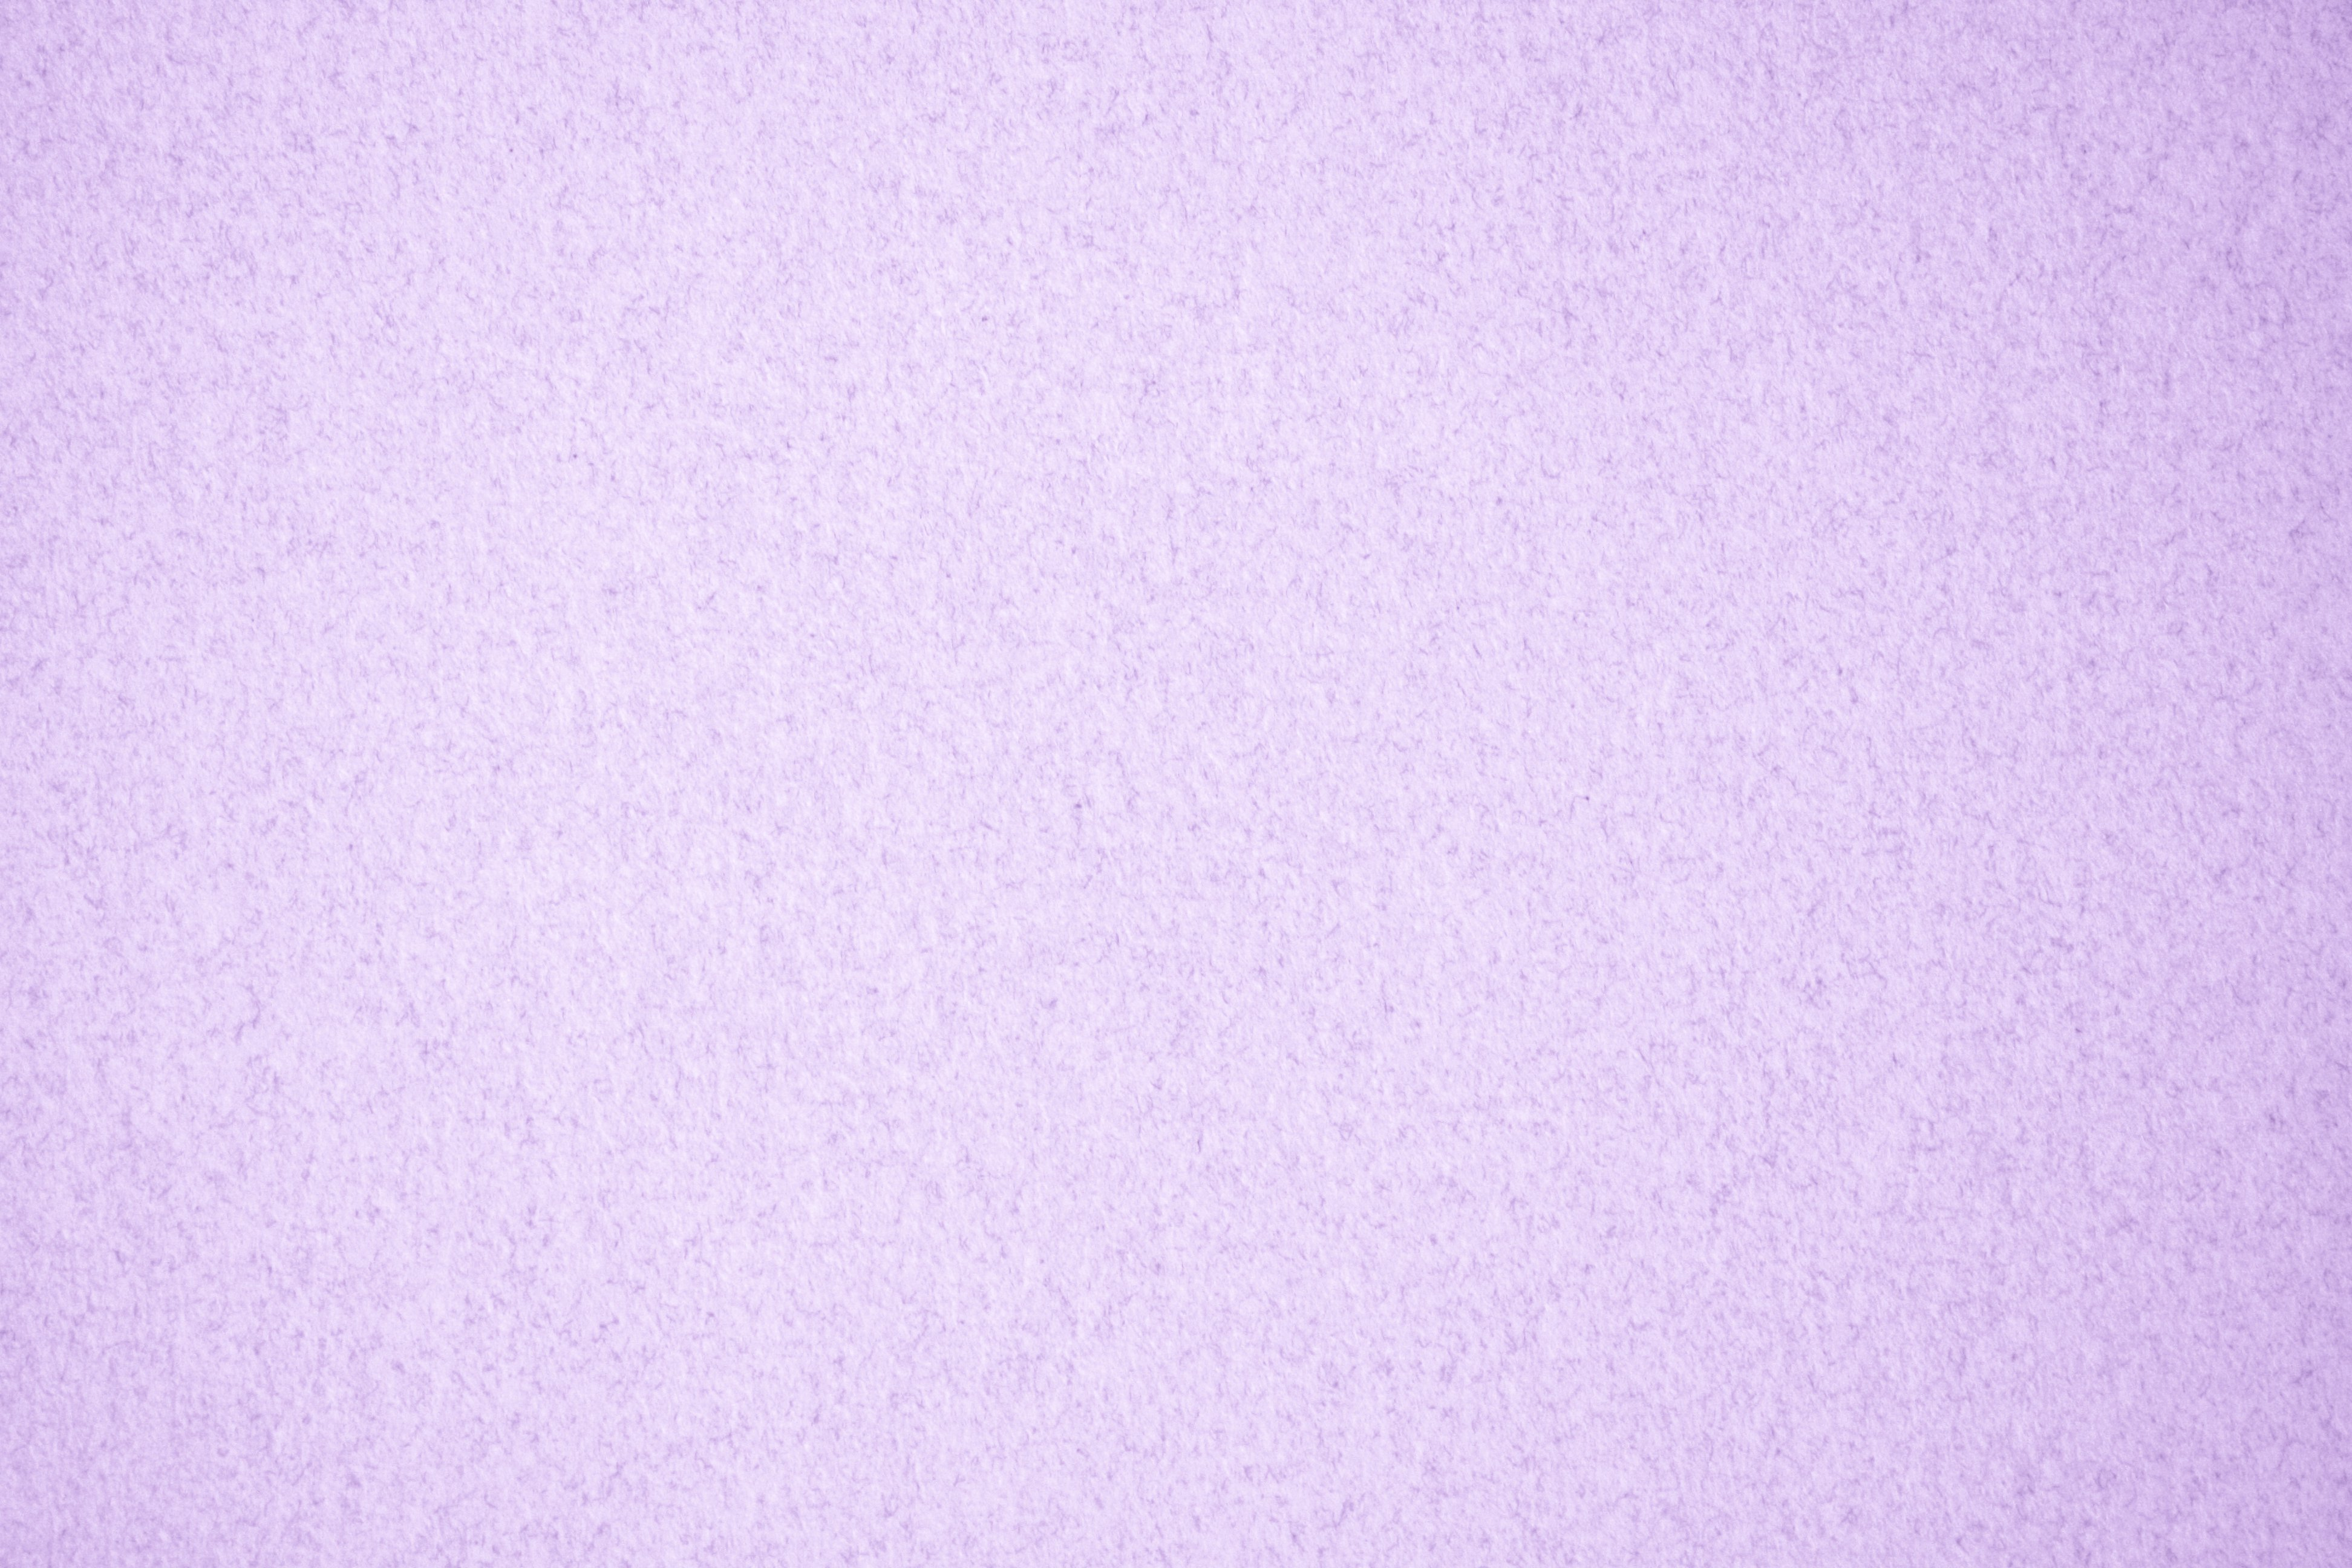 Lavender Speckled Paper Texture Picture Free Photograph